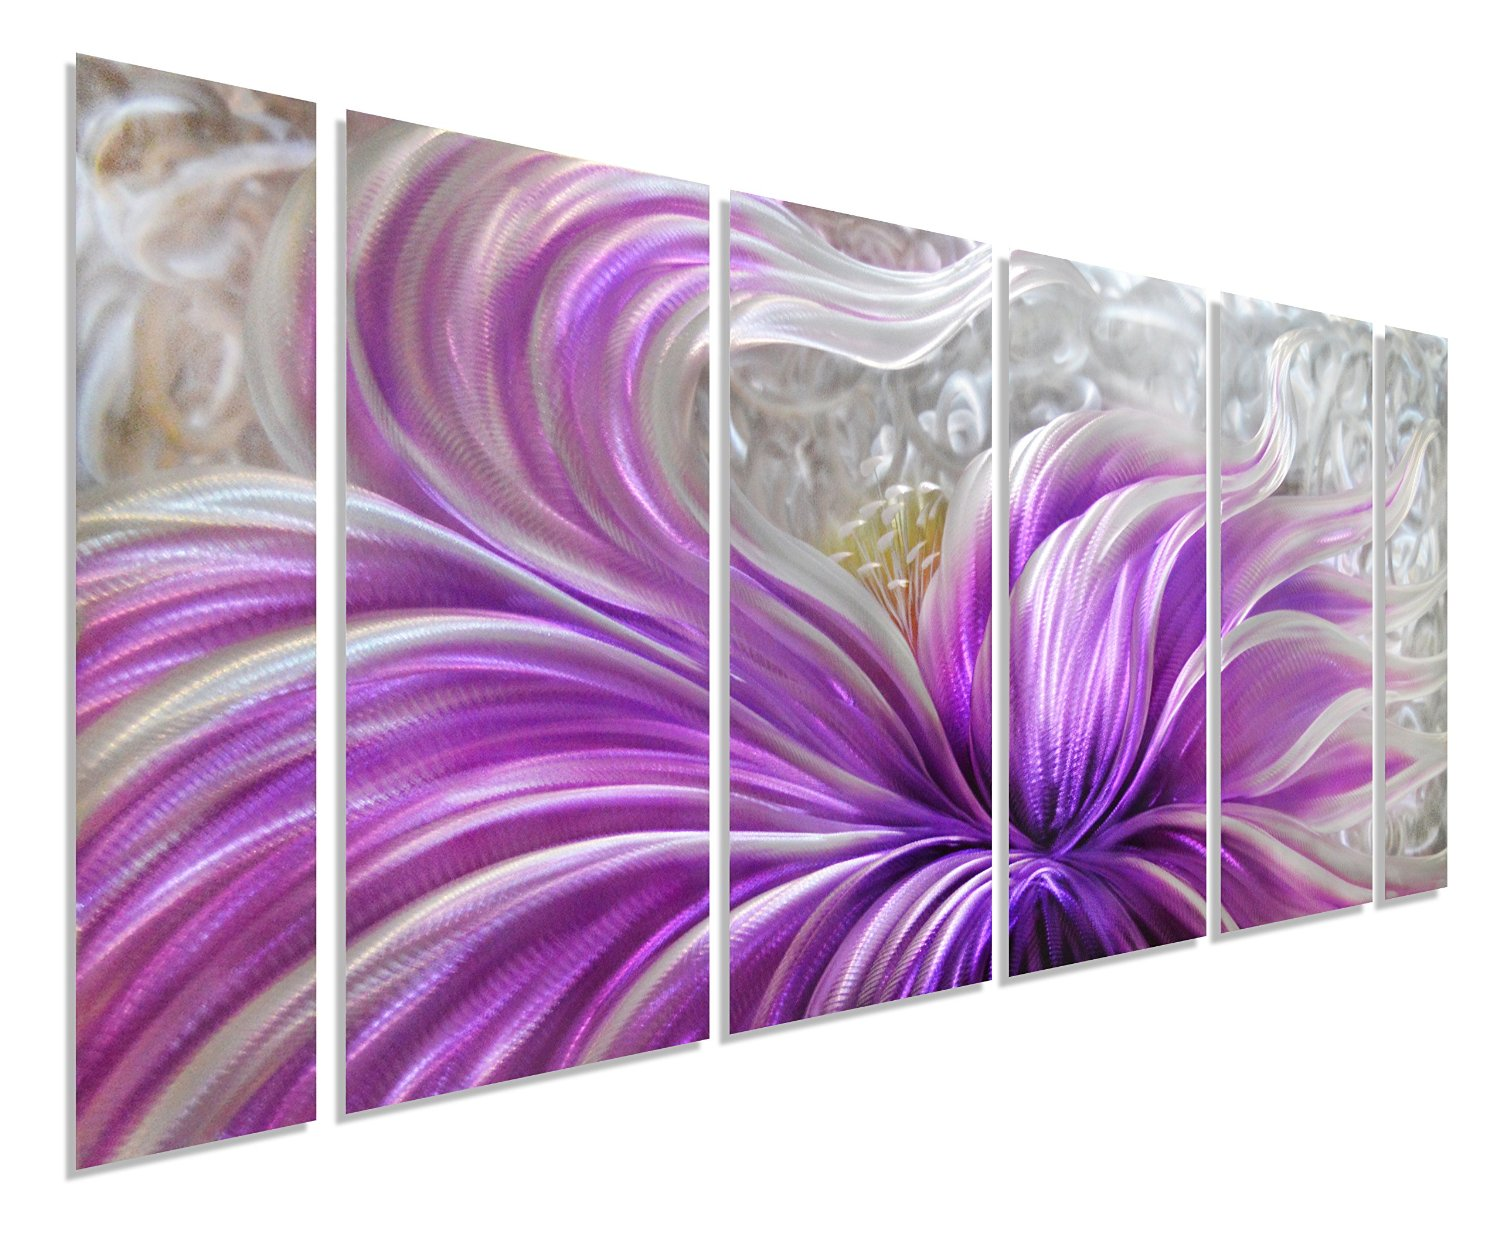 """Purple Blossoms Flower Metal Wall Art, Large Floral Contemporary Metal Wall Décor, 3D Wall Art for Modern and Contemporary Décor, 6-Panels Measures 24""""x 65"""", Great for Indoor and Outdoor Settings"""